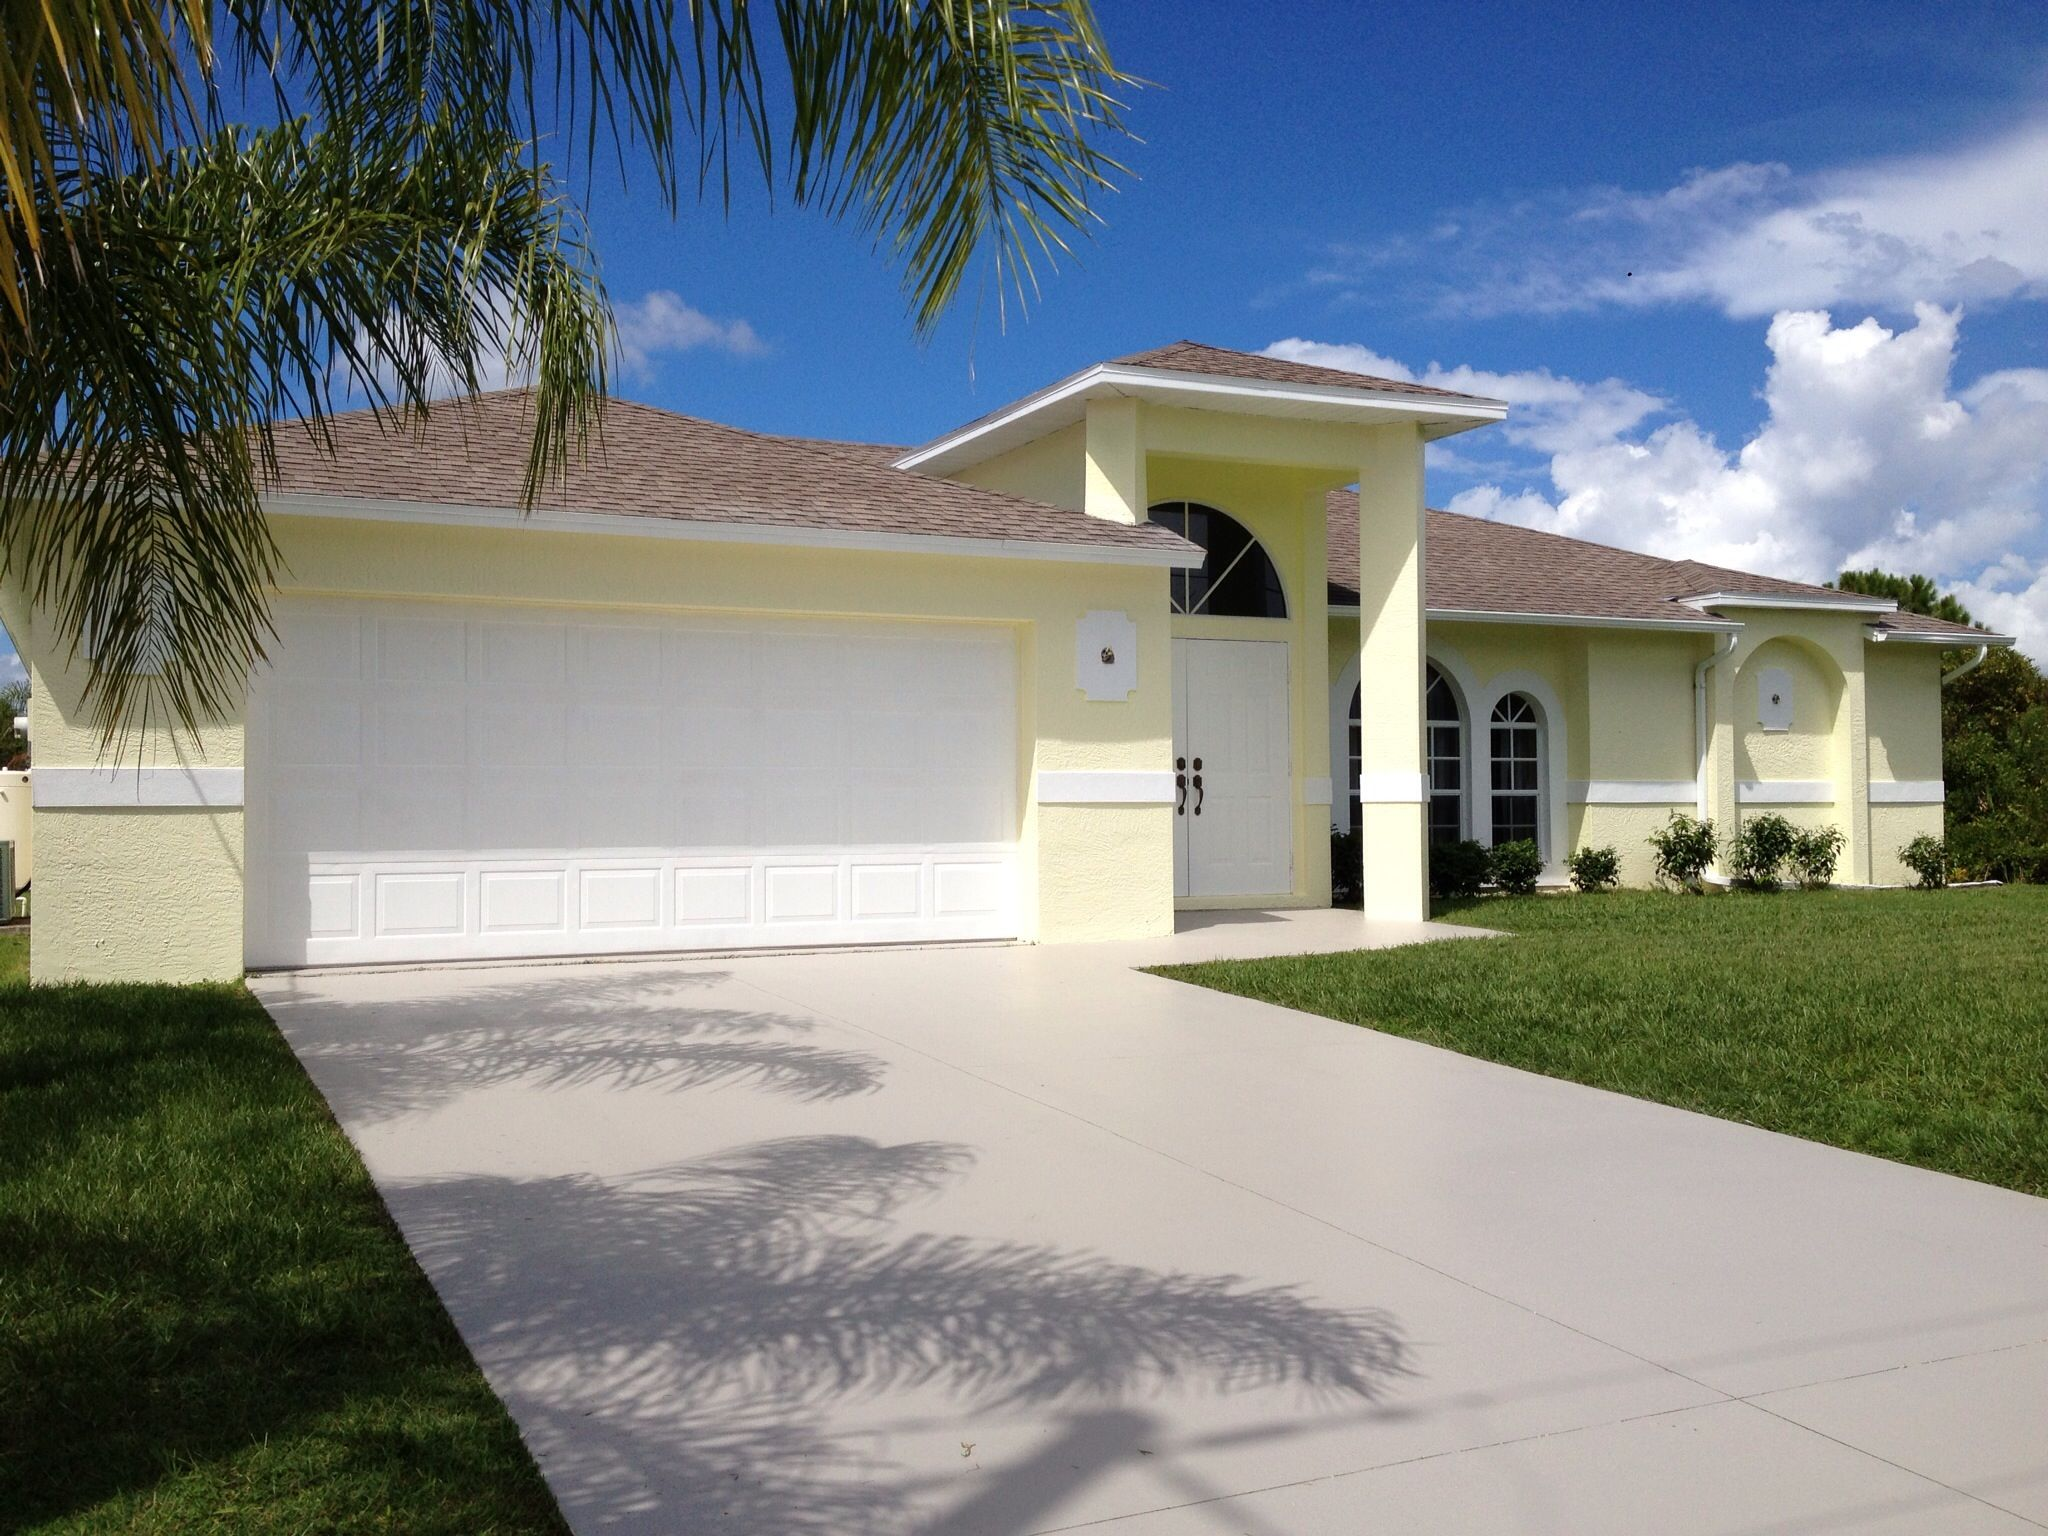 Exterior Painting Cost - Burnett 1-800-PAINTING